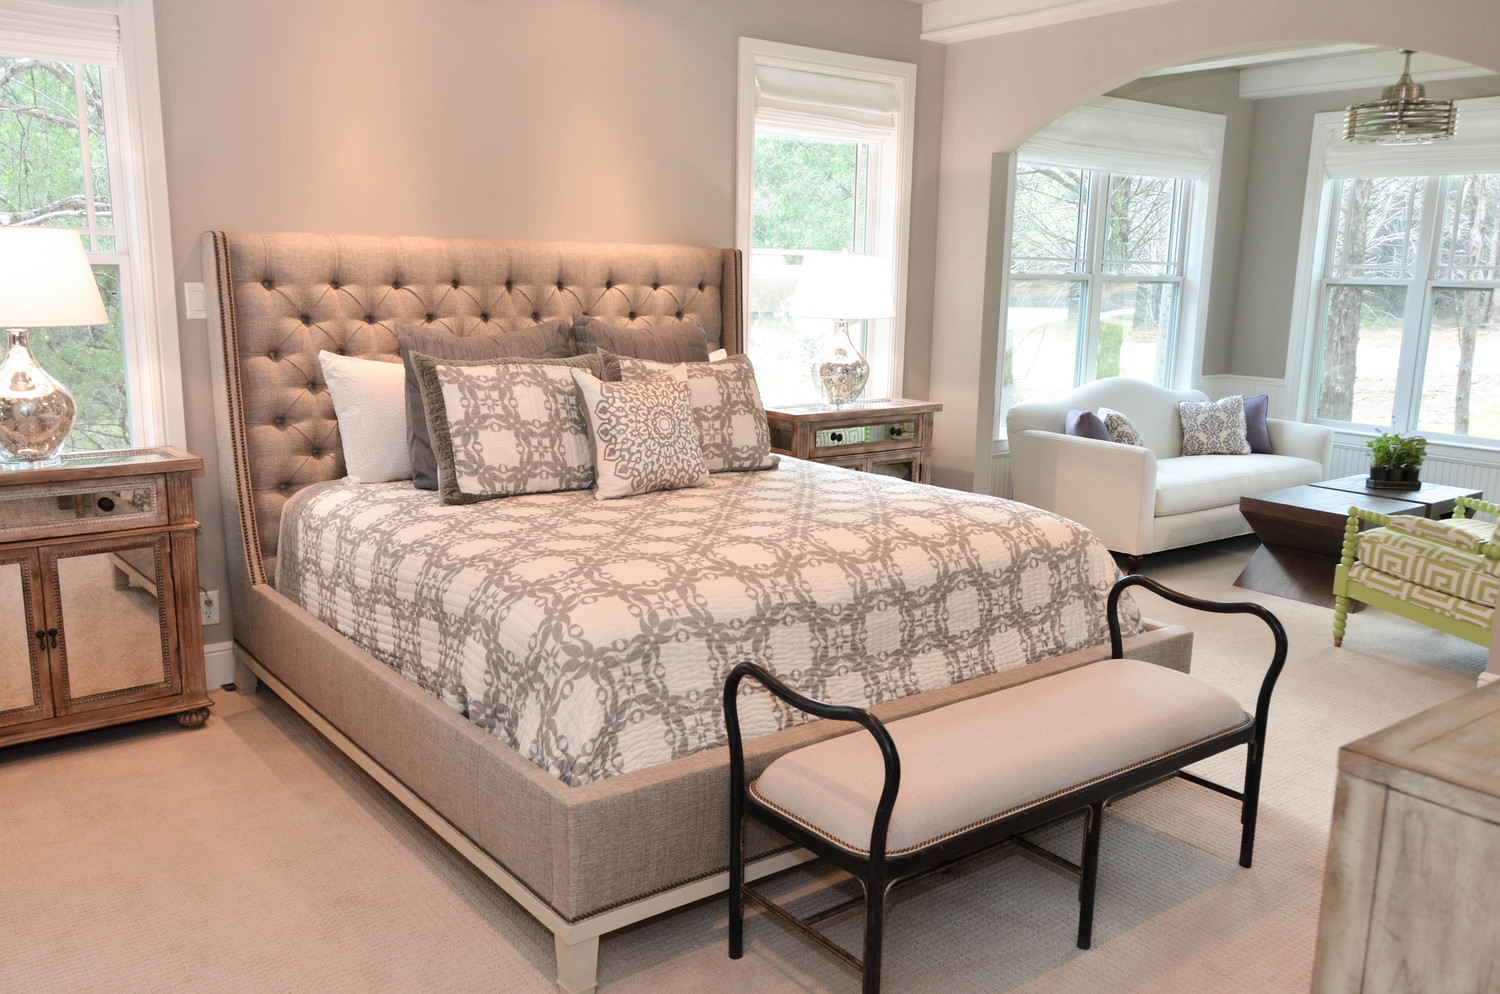 Vanguard Cleo bed. Grey tufted headboard with mirrored night stands. Country design.